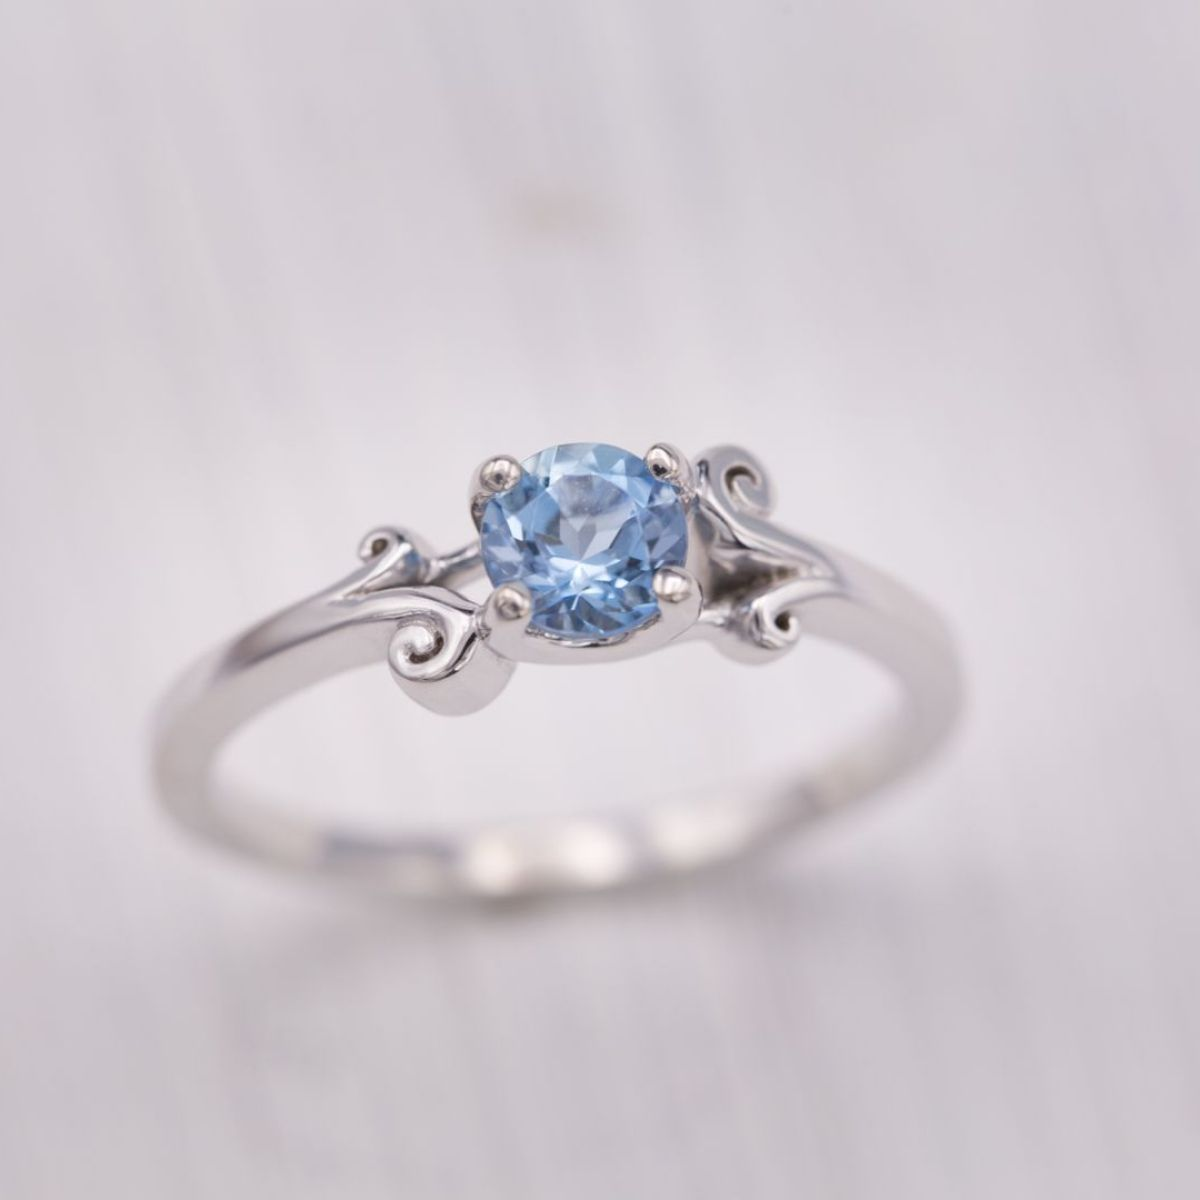 aquamarine solitaire with filigree - engagement ring setting